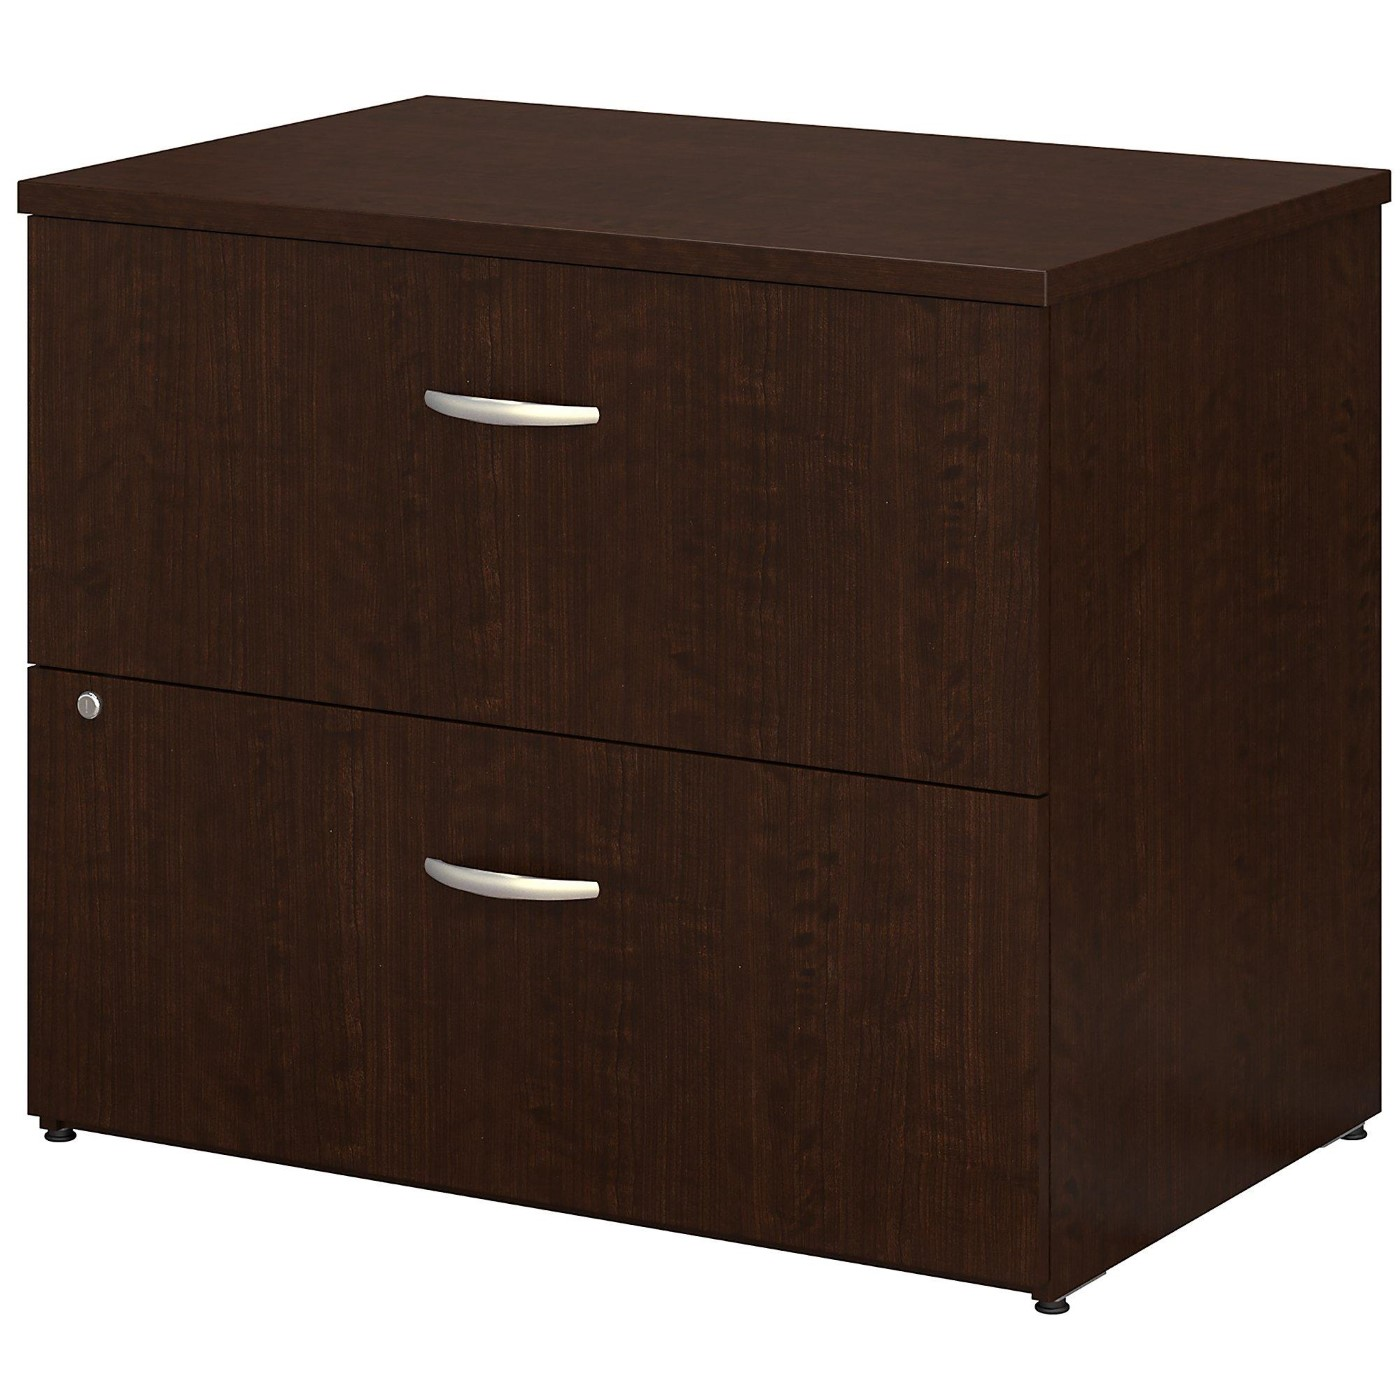 <font color=#c60><b>BUSH BUSINESS FURNITURE EASY OFFICE LATERAL FILE CABINET. FREE SHIPPING</font></b>